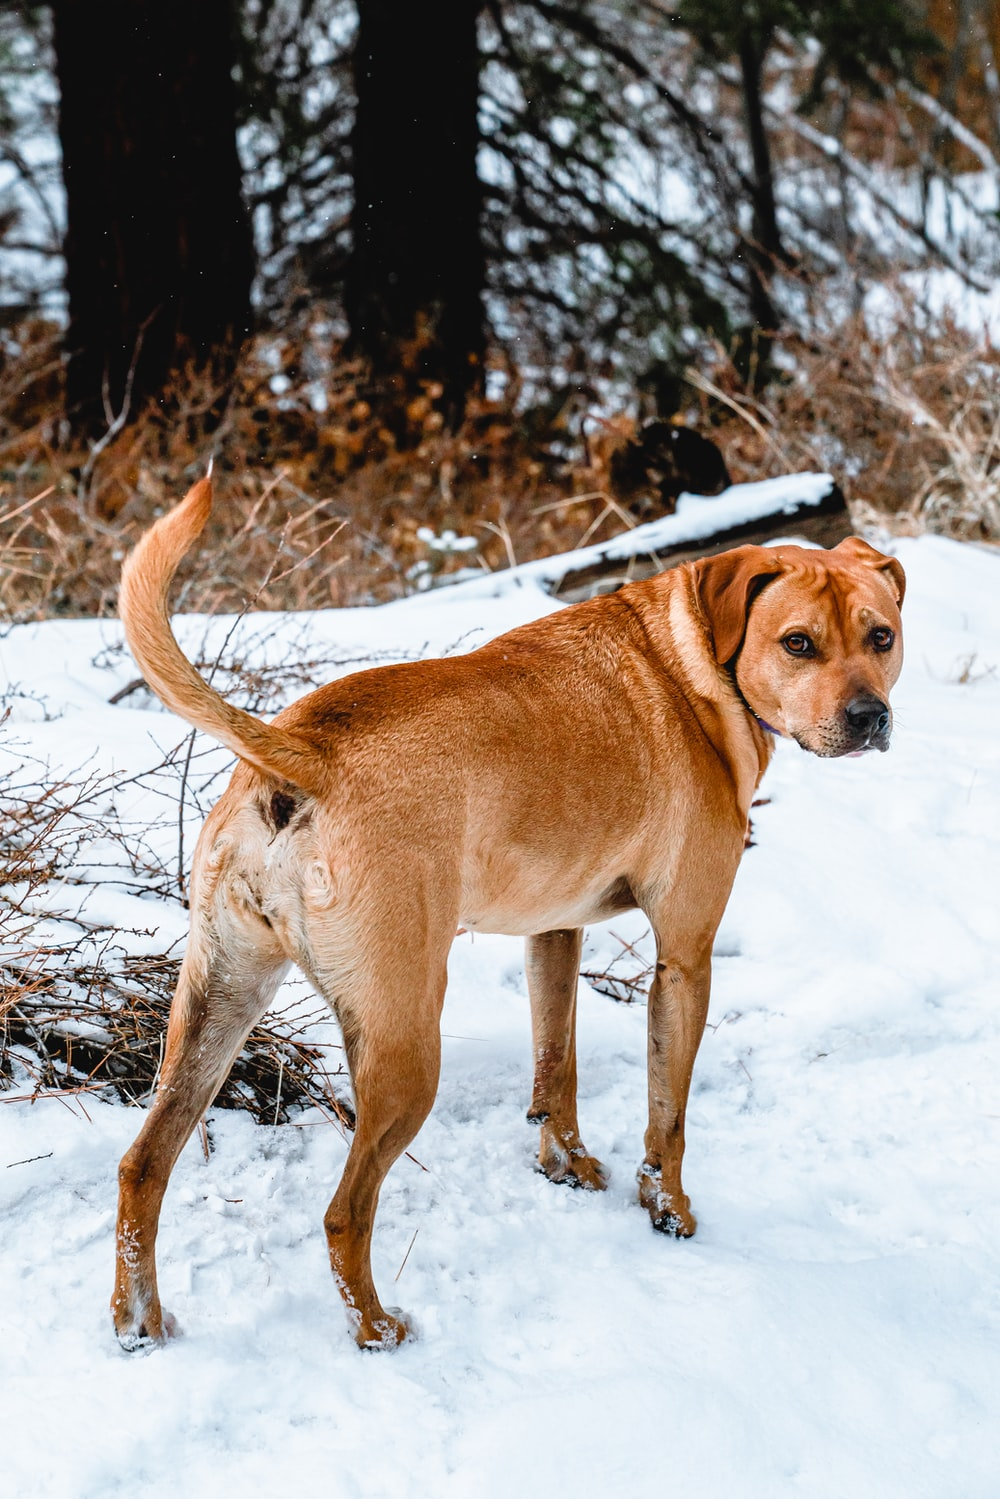 brown short coated dog on snow covered ground during daytime